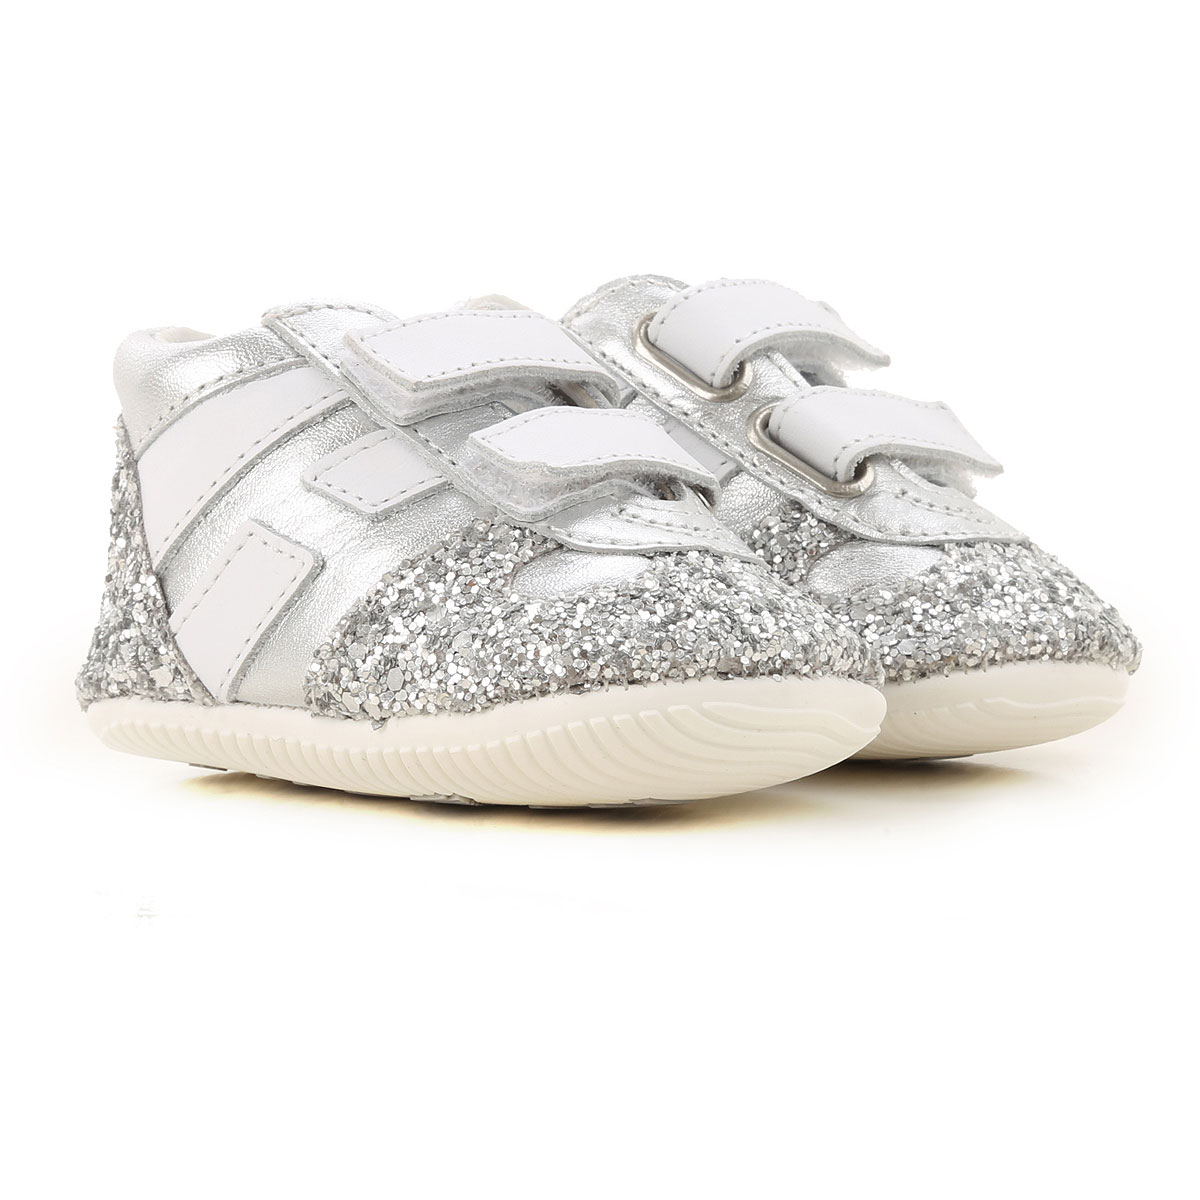 Hogan Baby Shoes for Girls On Sale, Silver, Leather, 2019, 2.5C 3.5C